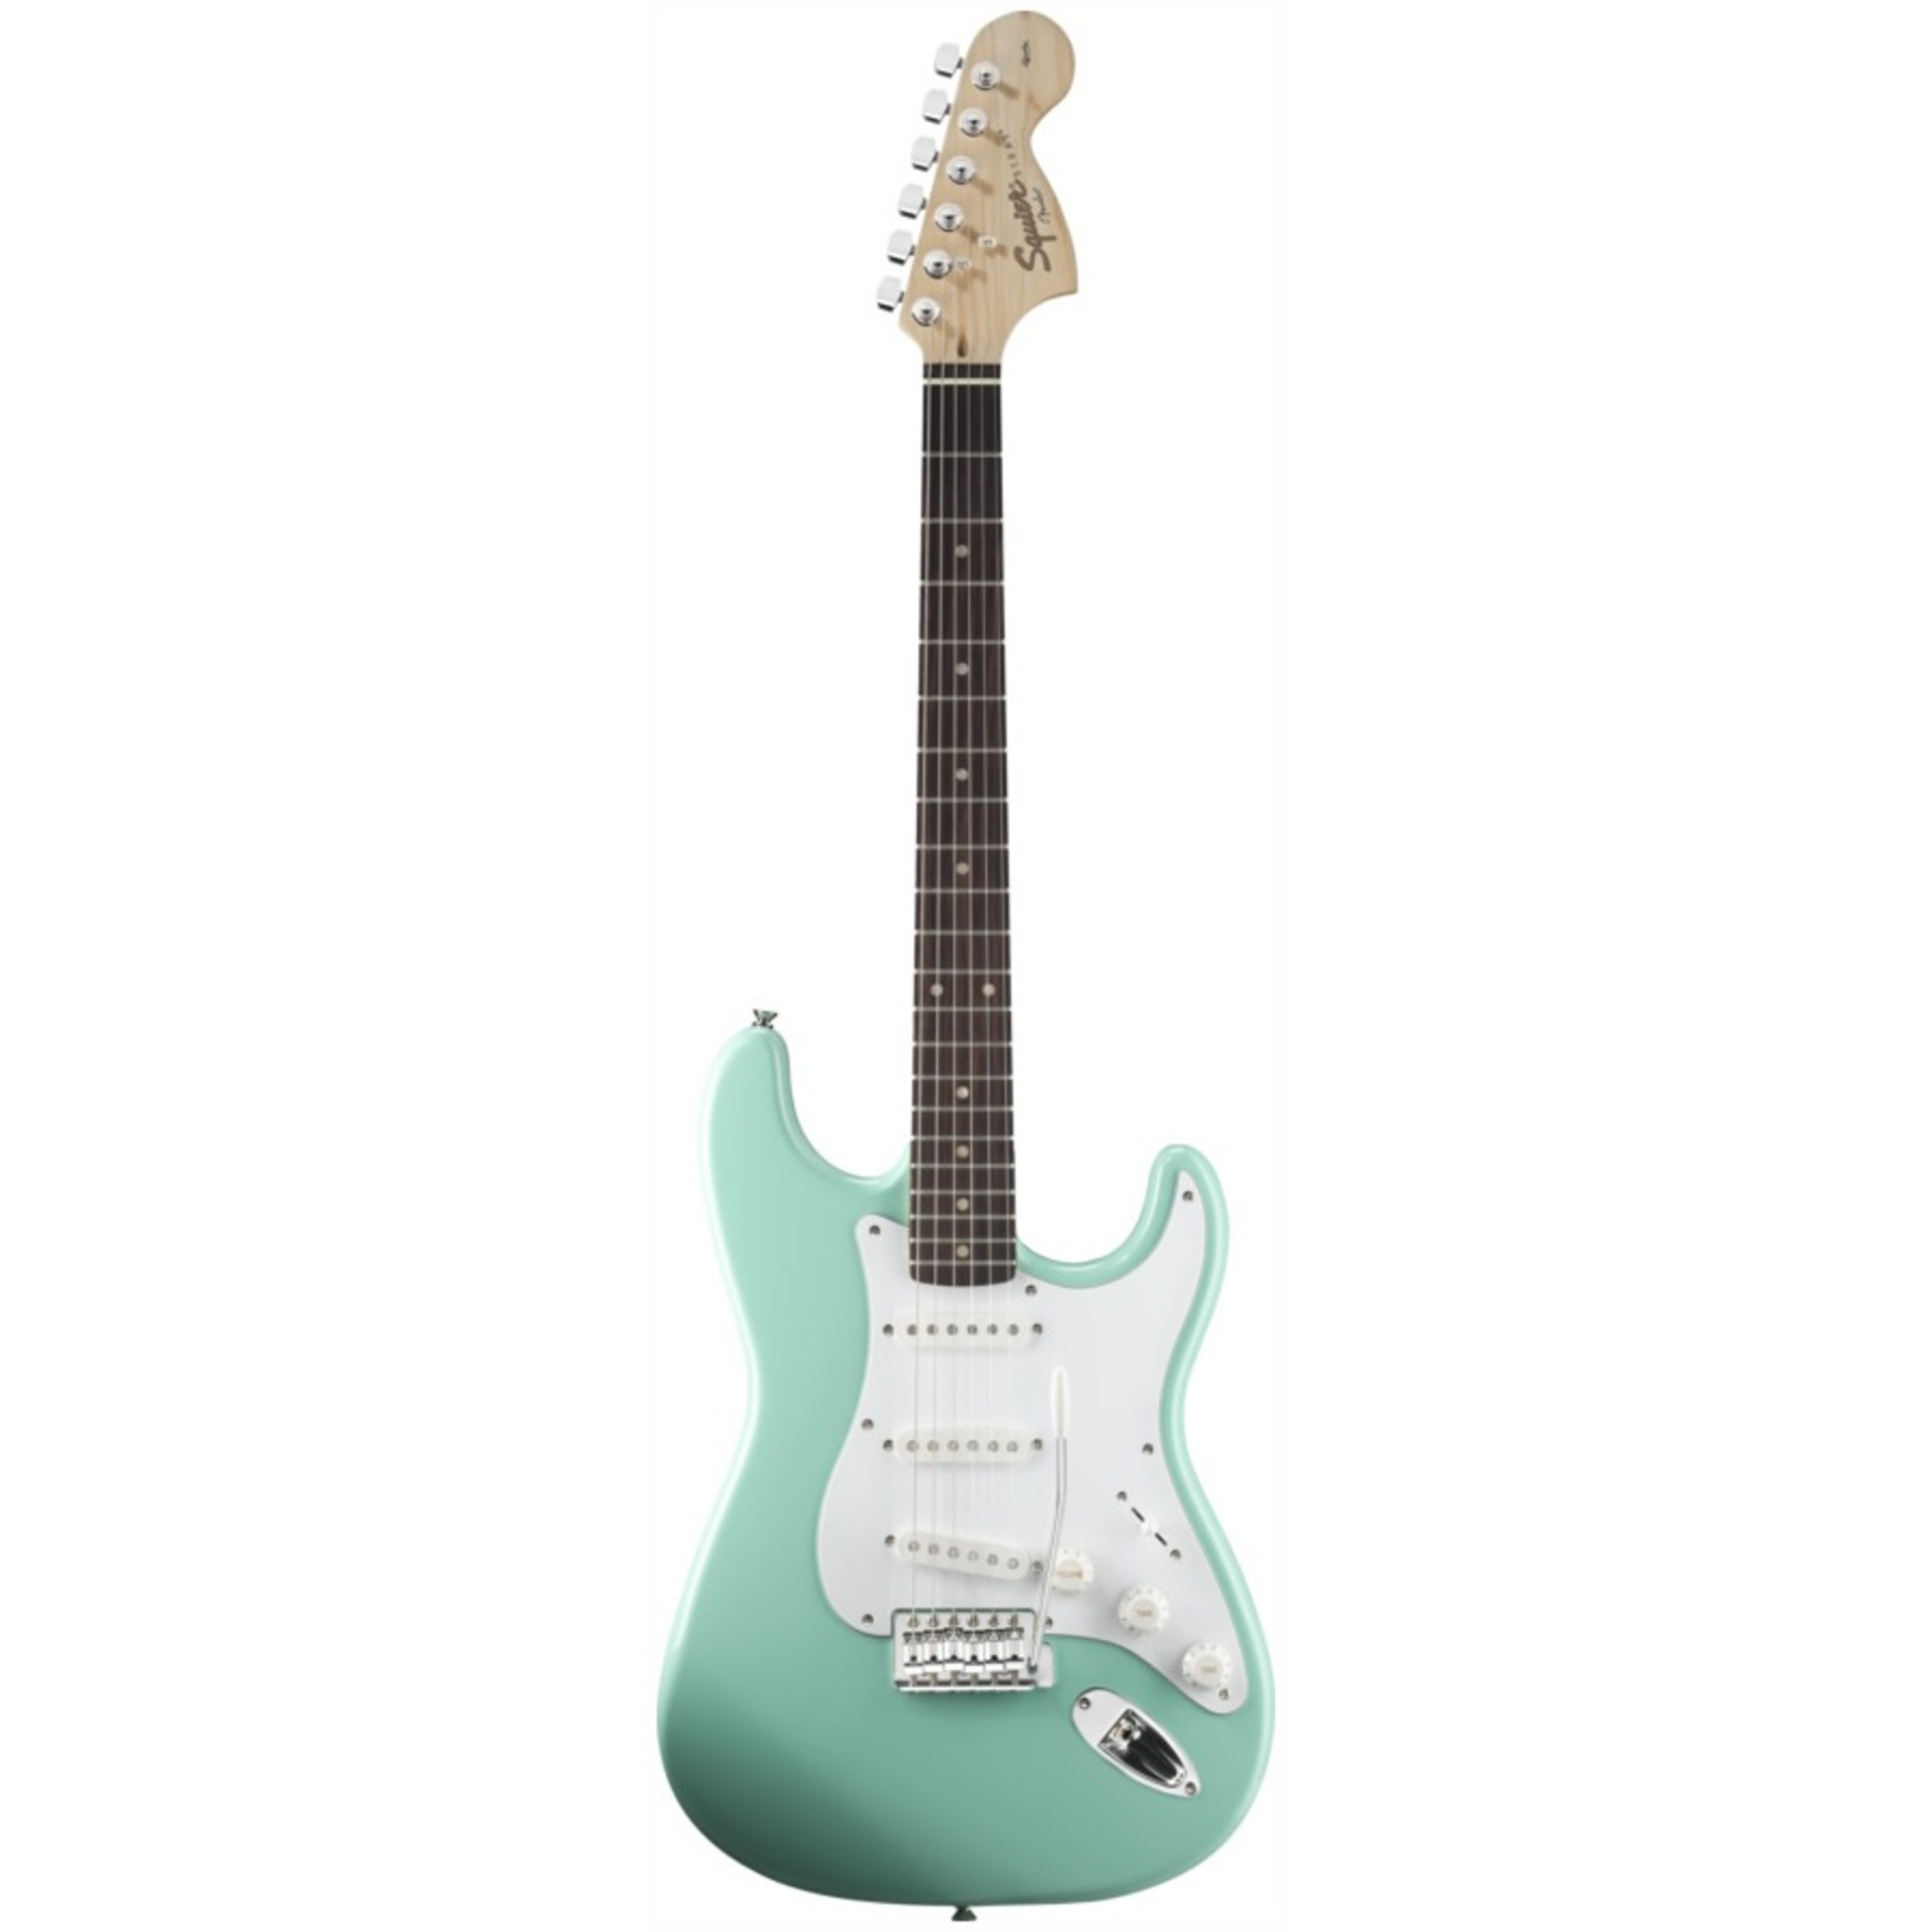 squier affinity stratocaster electric guitar laurel fingerboard giggear. Black Bedroom Furniture Sets. Home Design Ideas